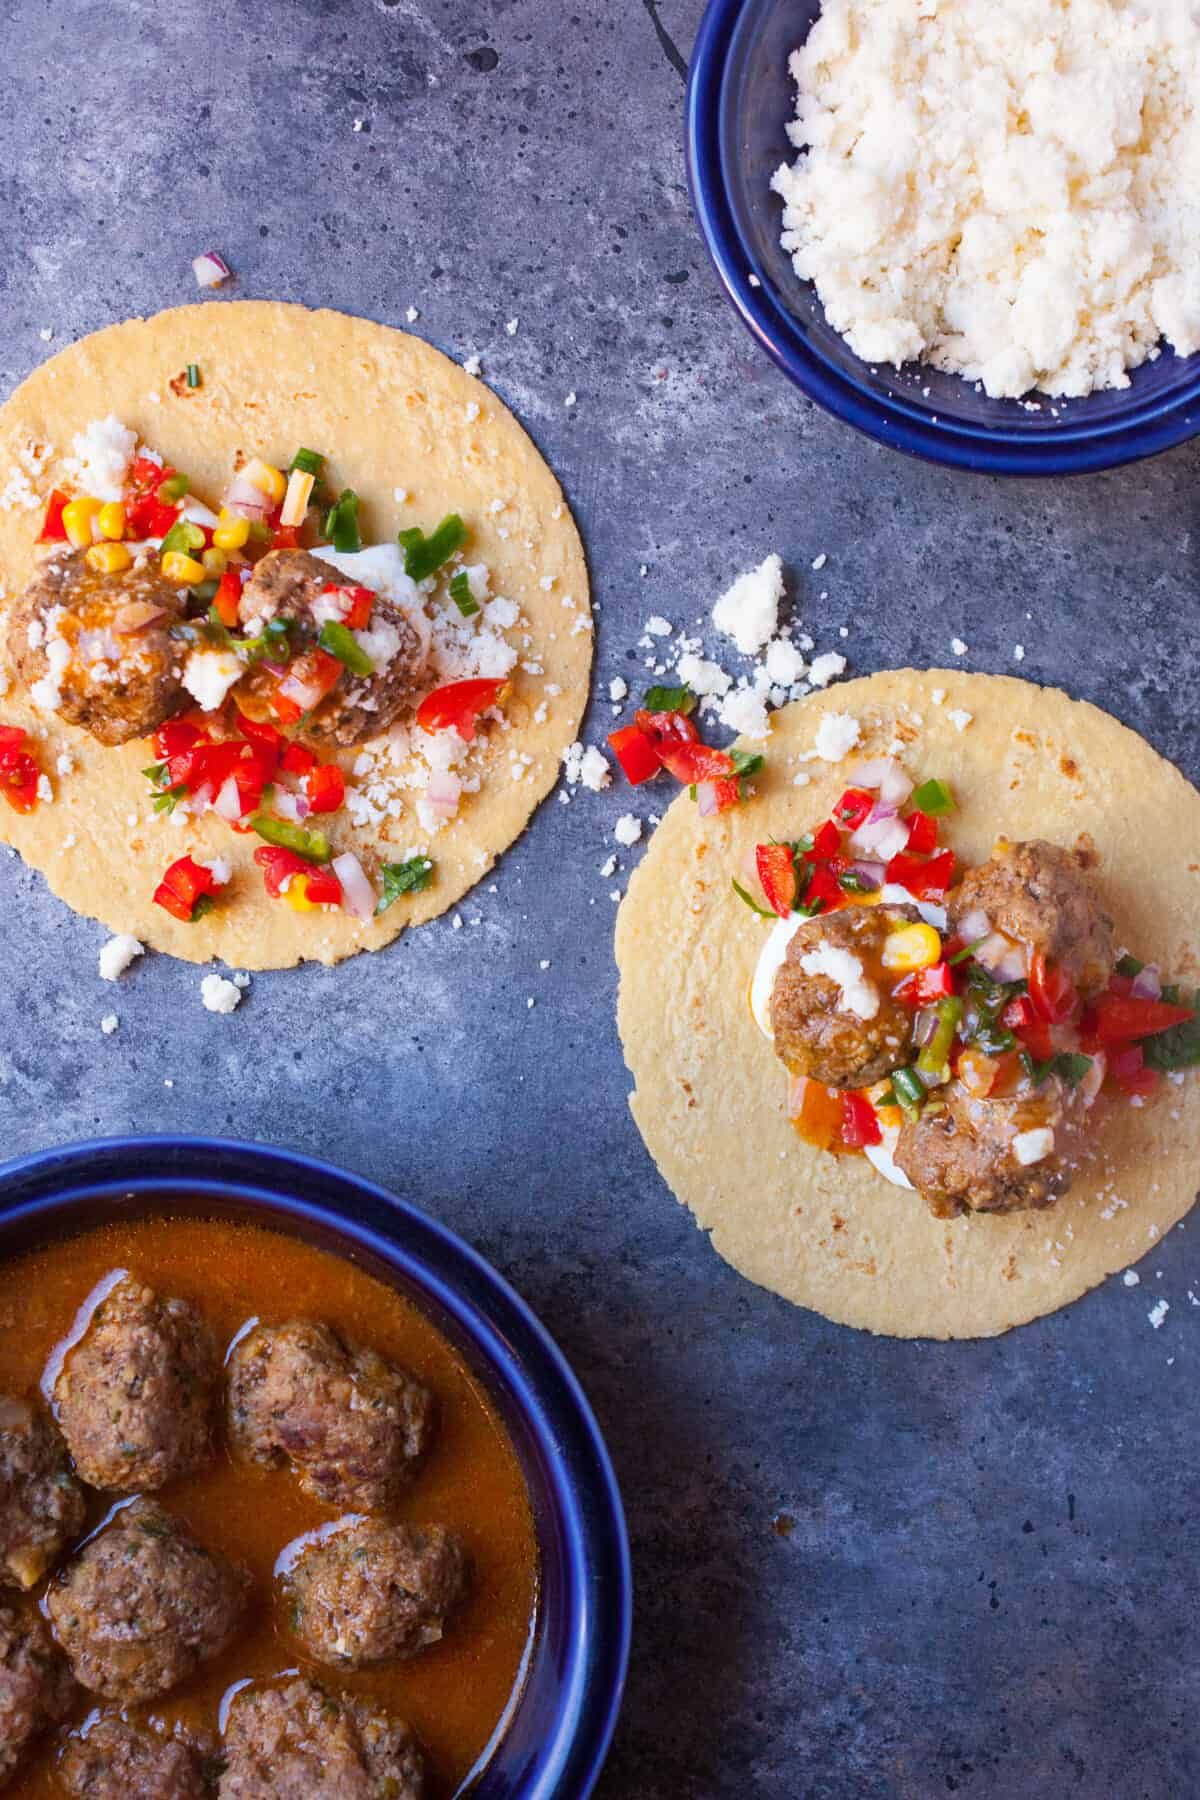 Enchilada Meatball Tacos: These simmered meatballs are packed with flavor and great served as tacos or individually as appetizers. They also freeze perfectly! | macheesmo.com